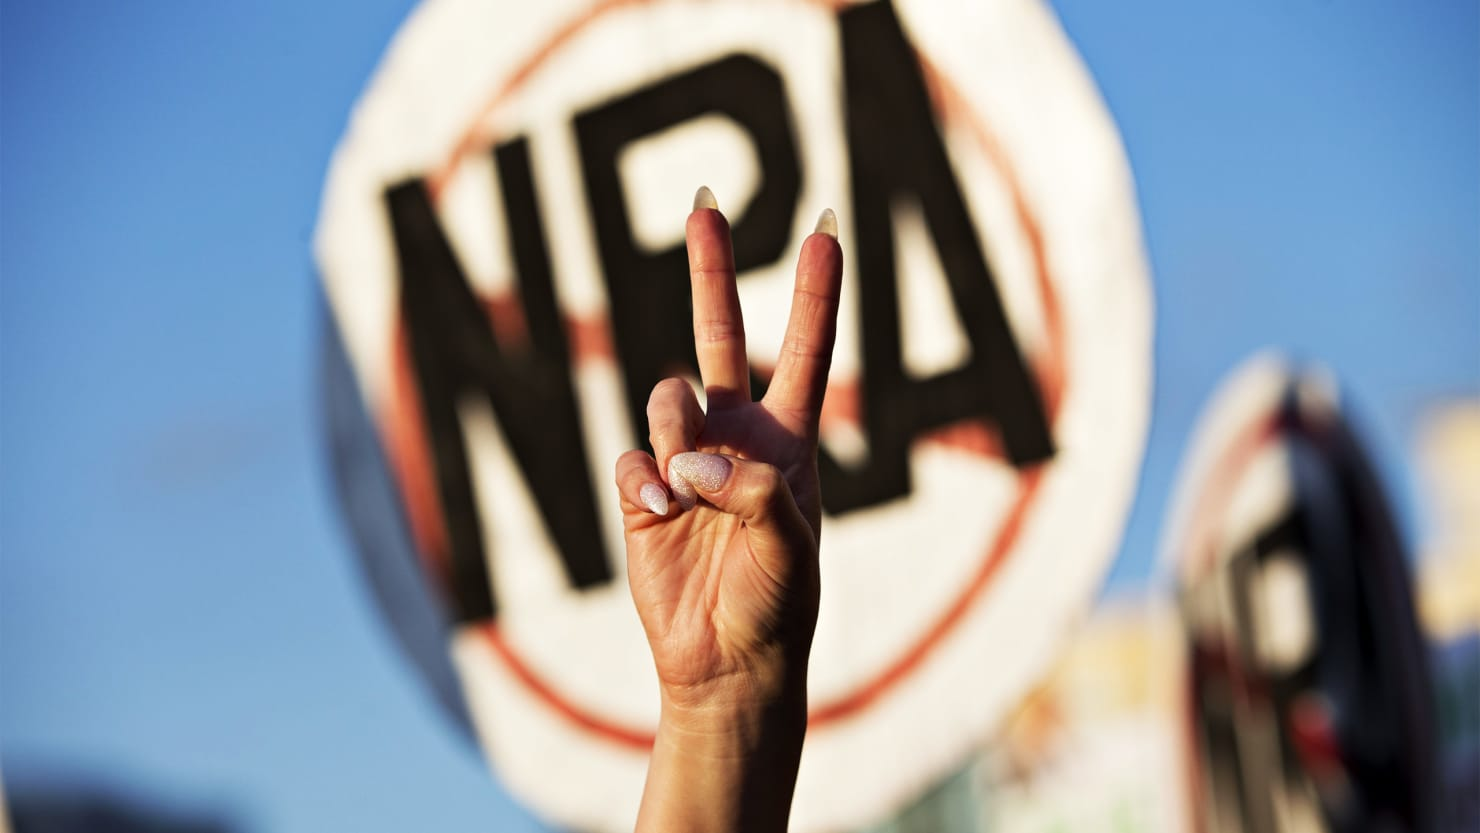 The NRA's 'A' Rating Loses Its Luster for GOP Candidates